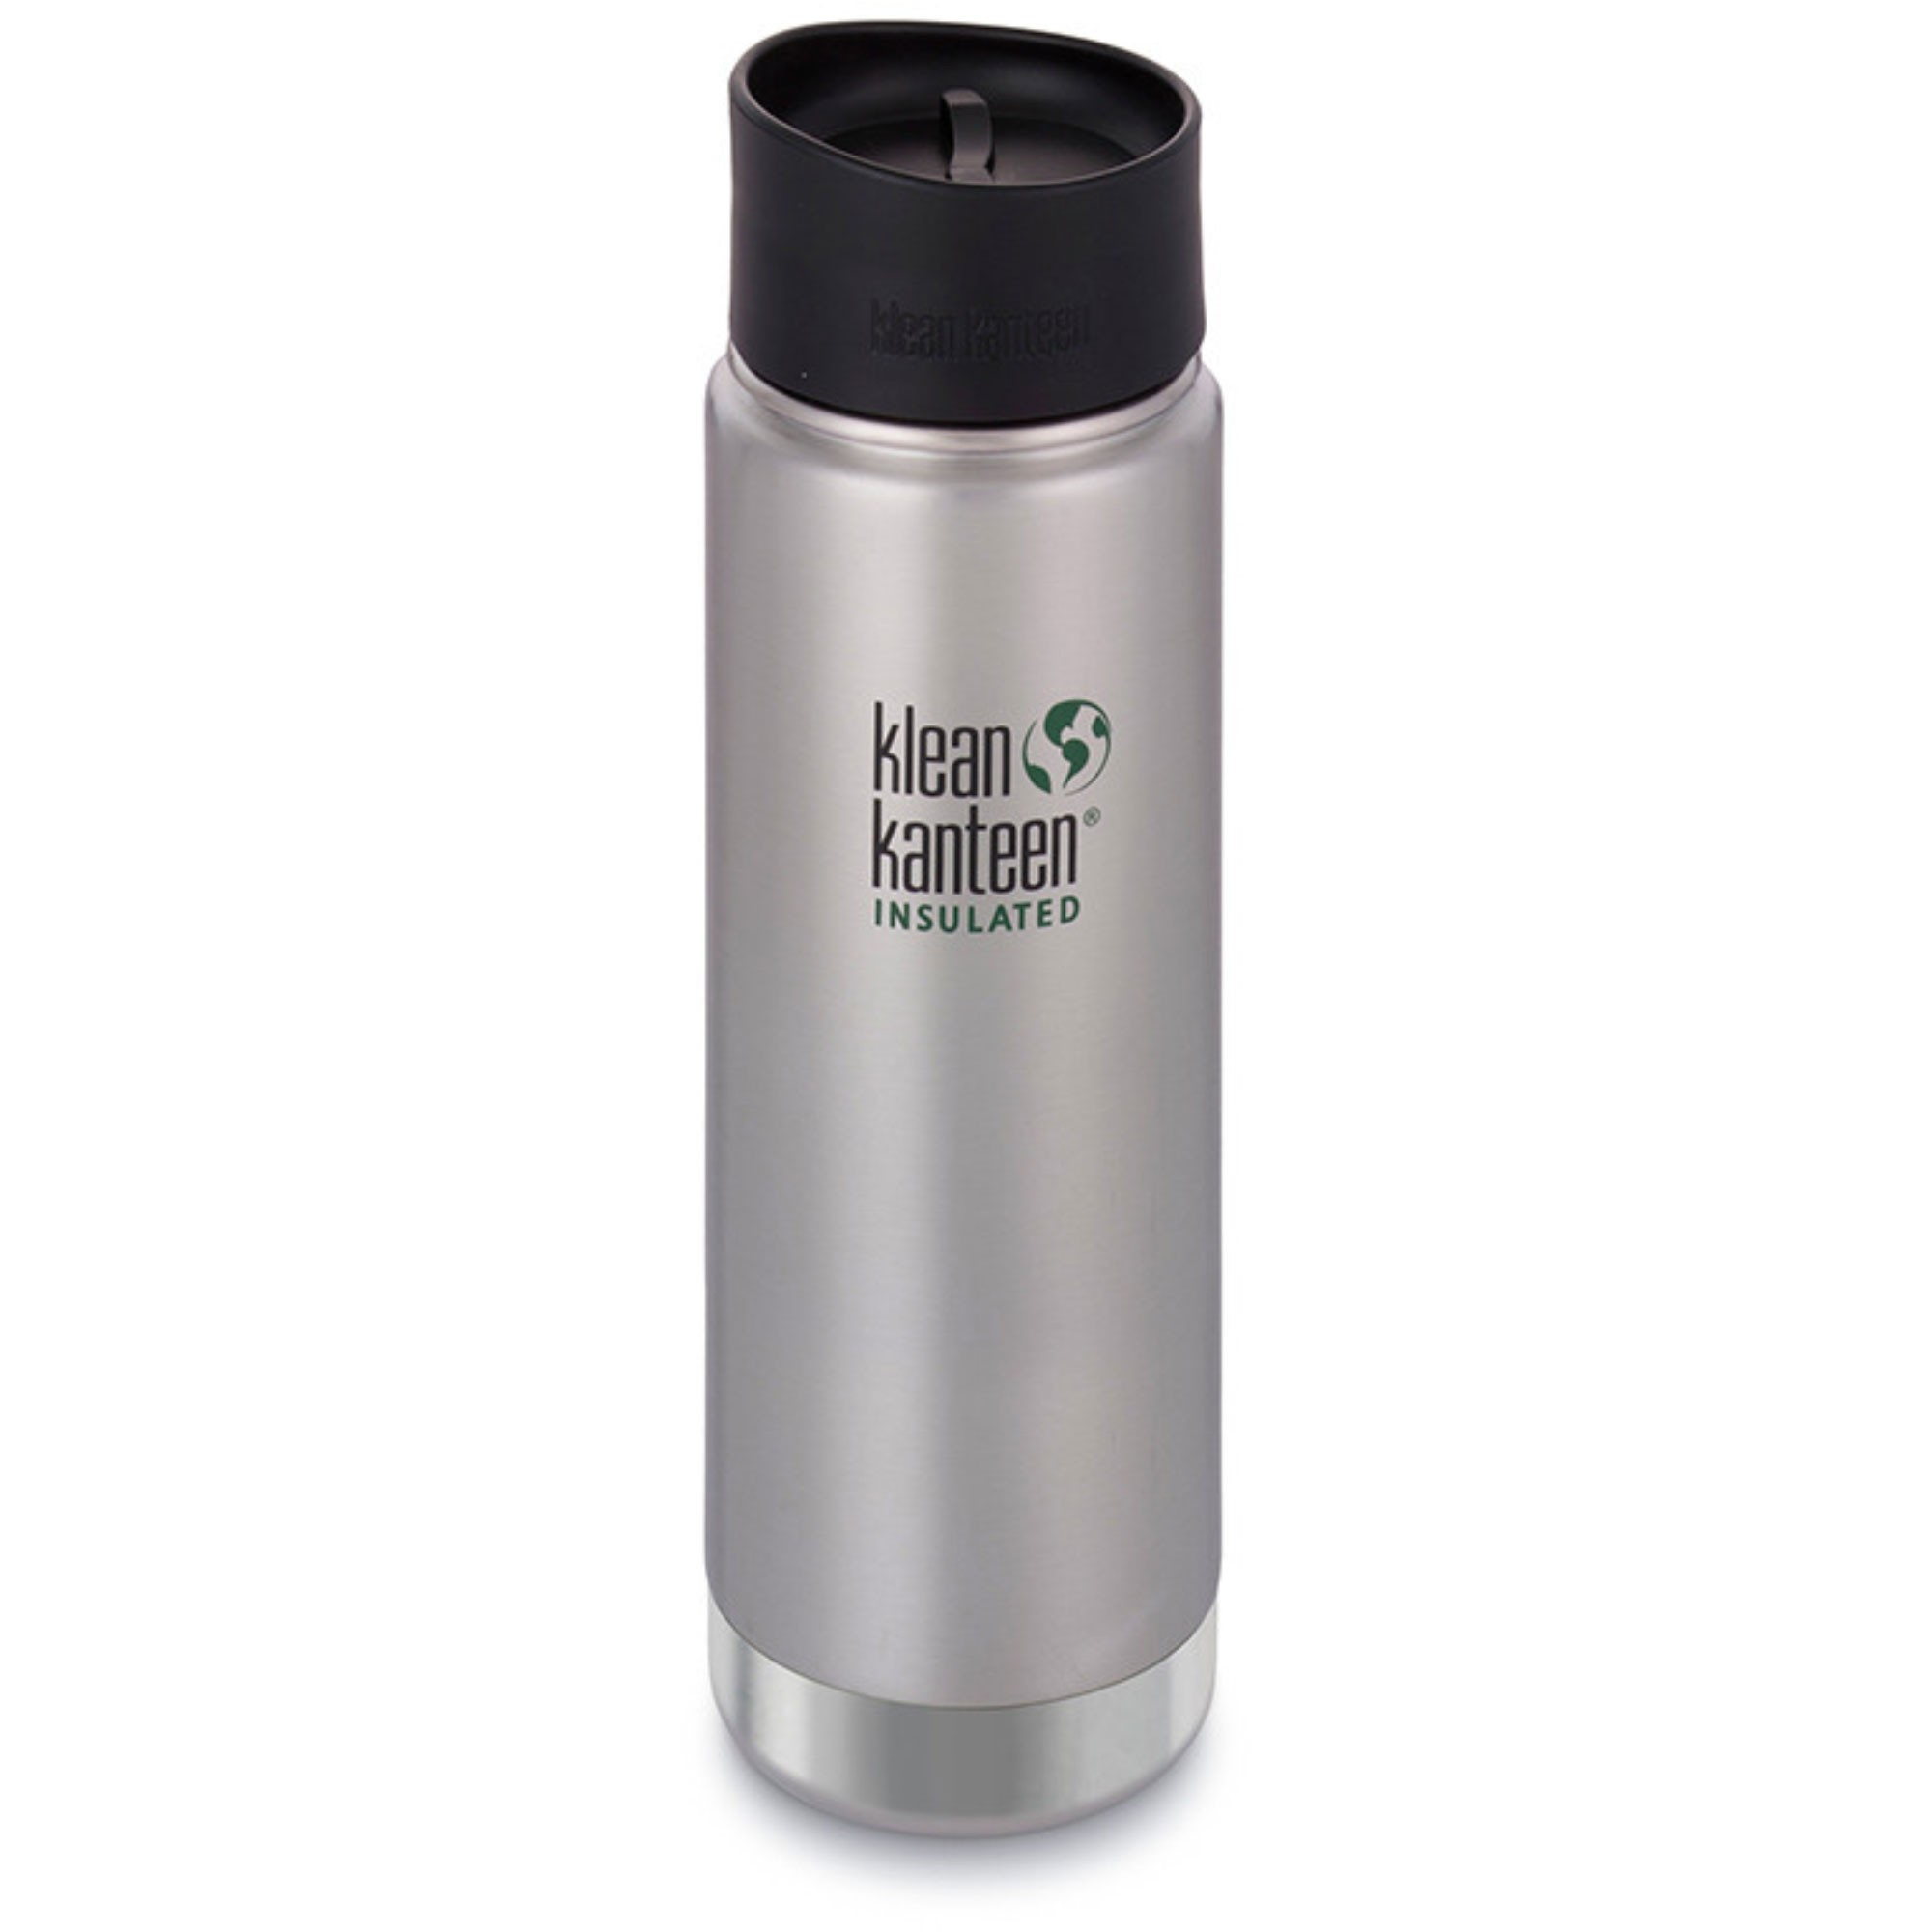 KLEAN KANTEEN - Insulated Cafe Cap Flask - 592ml - Stainless Steel